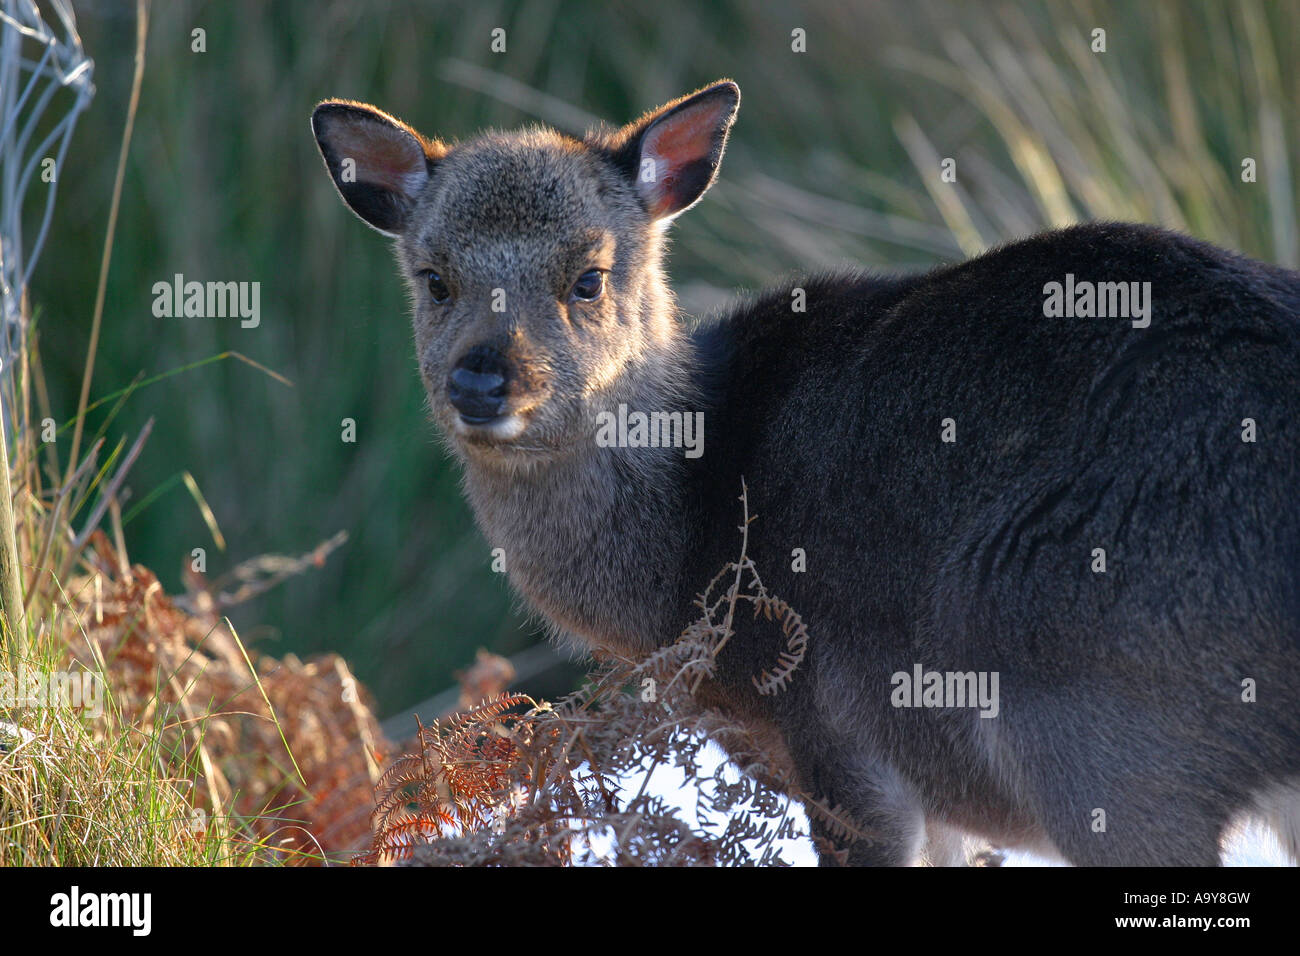 young deer in undergrowth - Stock Image